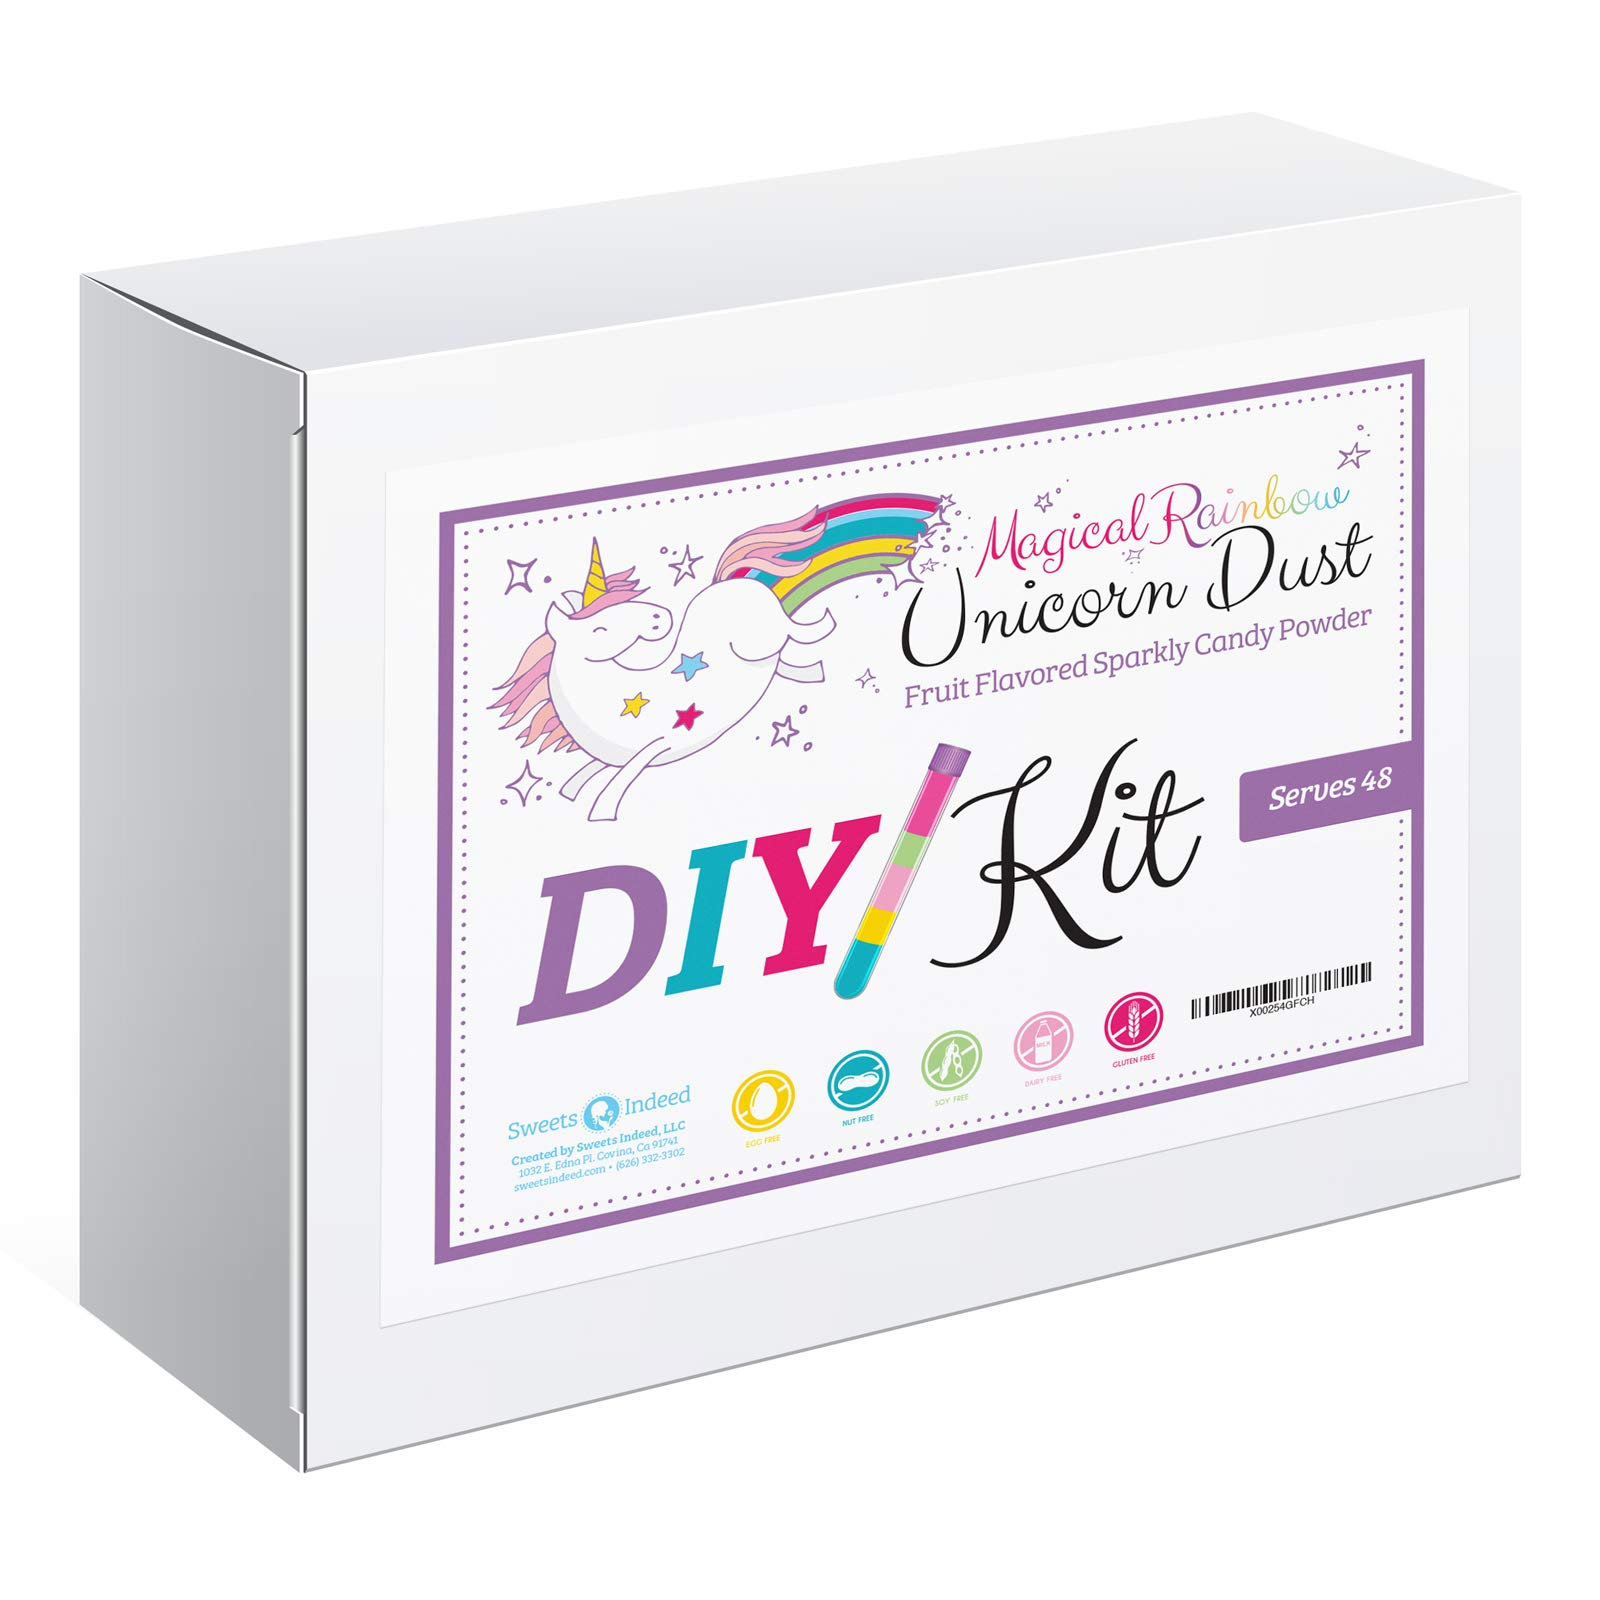 DIY Candy Kit | Magical Rainbow Unicorn Dust | Glittery Candy Powder | Serves 48 | Fun Party Activity! | Gluten, Dairy, Soy and Nut Free! | Fruit Flavored Candy | MADE IN THE USA!